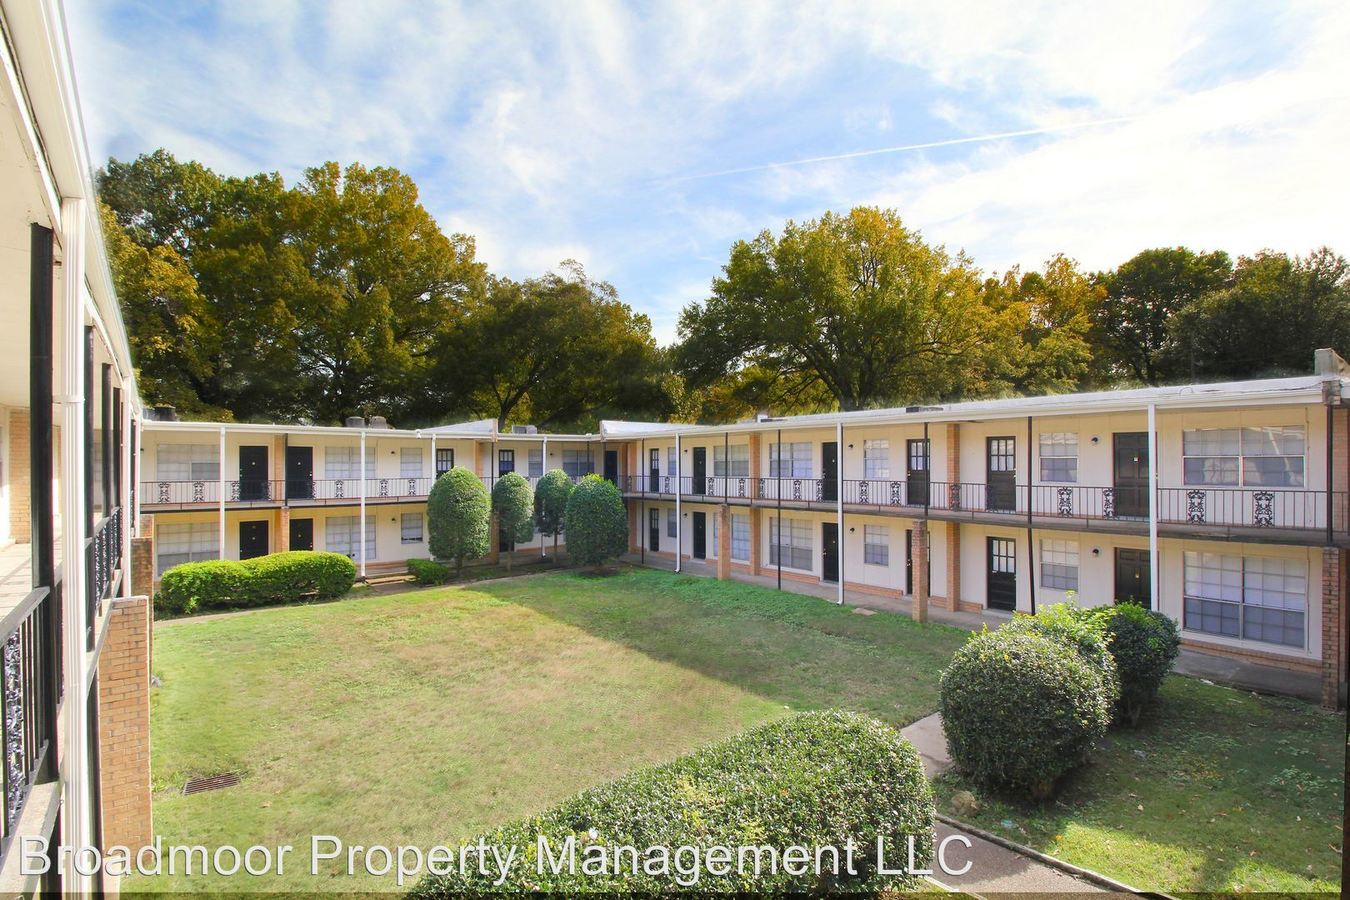 2 Bedrooms 1 Bathroom Apartment for rent at 3636 Spottswood Ave in Memphis, TN